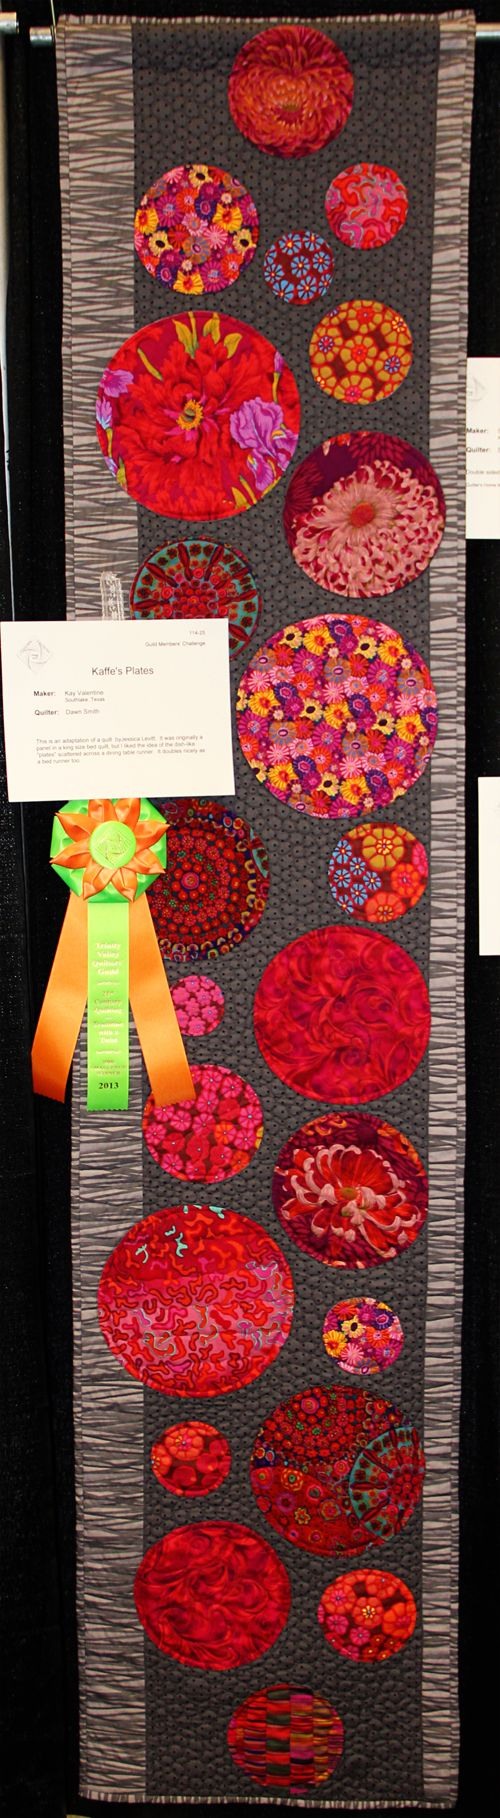 Kaffe's Plates (Maker: Kay Valentine, Quilter: Dawn Smith)